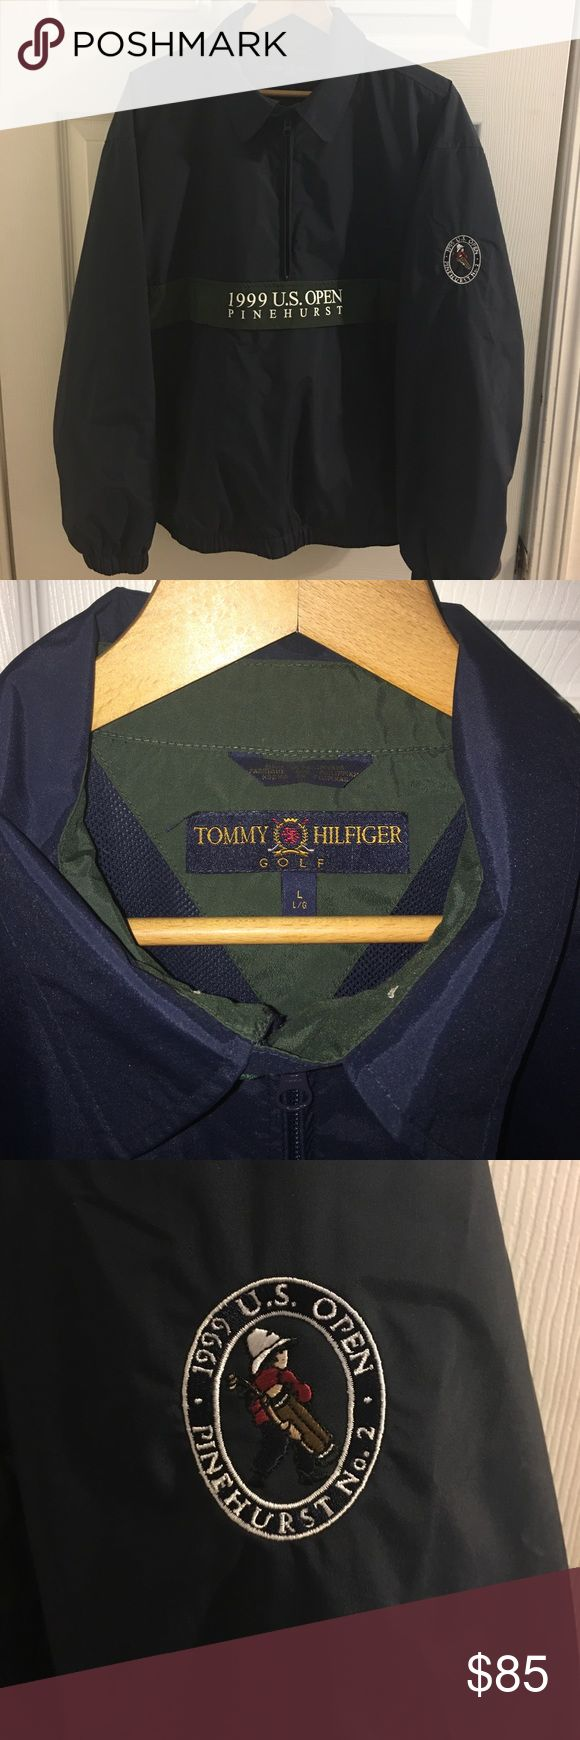 "Tommy Hilfiger. 1999 US Open pullover 1999 US Open Half Zip pullover. Size L. One of the most coveted collectible jacket ""other than a green Masters jacket "" in all of golf. The most remembered golf tournament of all time. Won by the Late Payne Stewart just before he died in that terrible plane  crash. Any golfer would be proud to display it. He was a great man that has been highly missed by his peers. This jacket was purchased at the Open from the main merchandise tent for $110. It is now…"